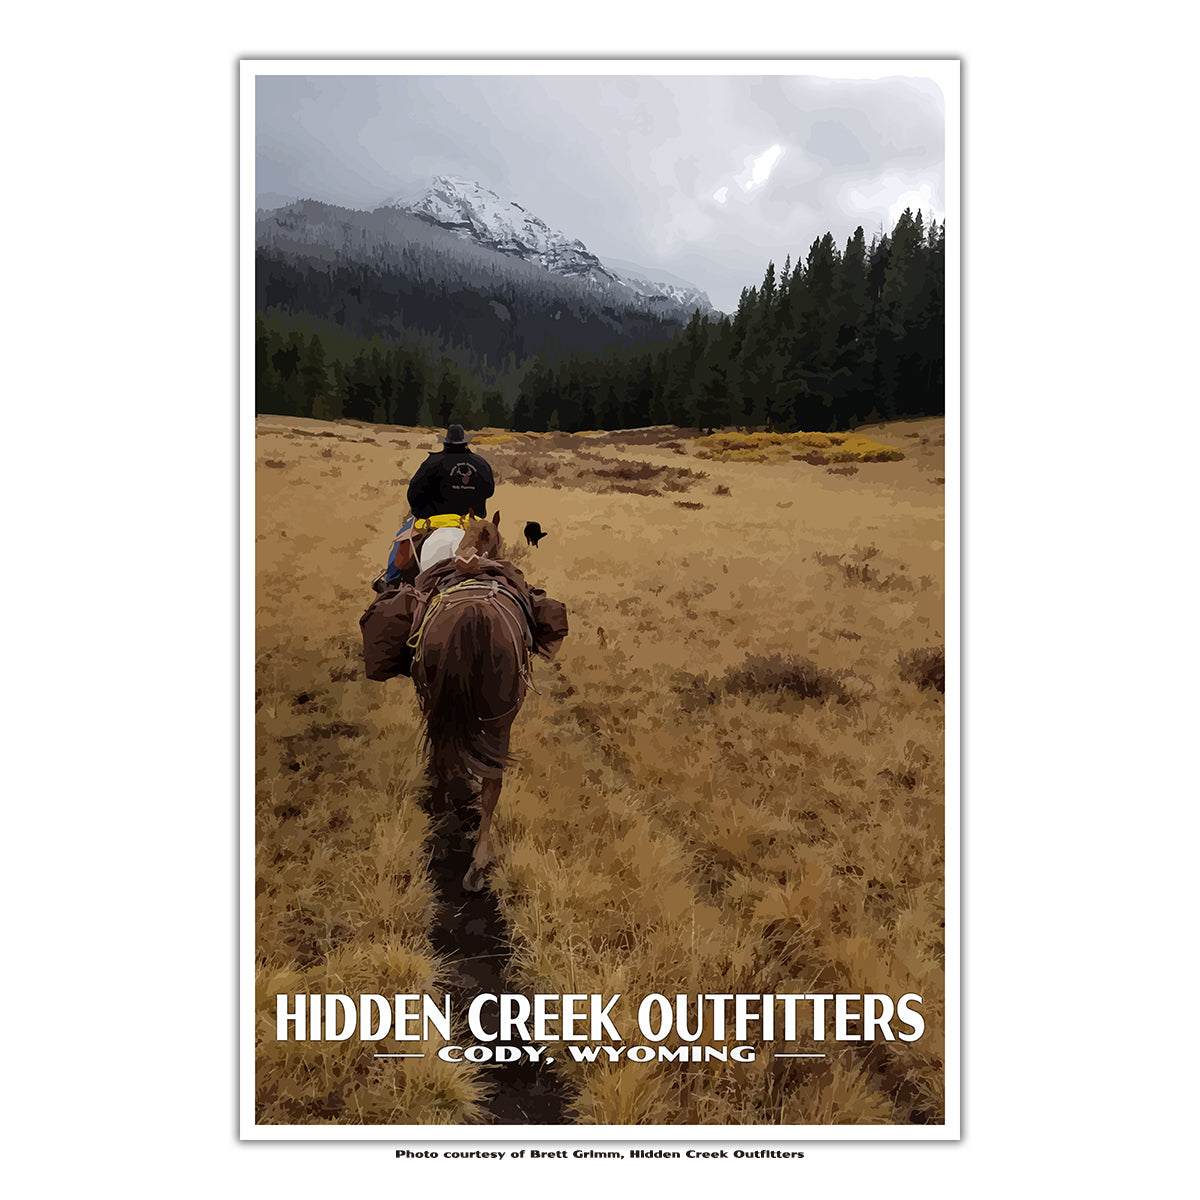 Hidden Creek Outfitters in Cody, WY Custom Travel Poster